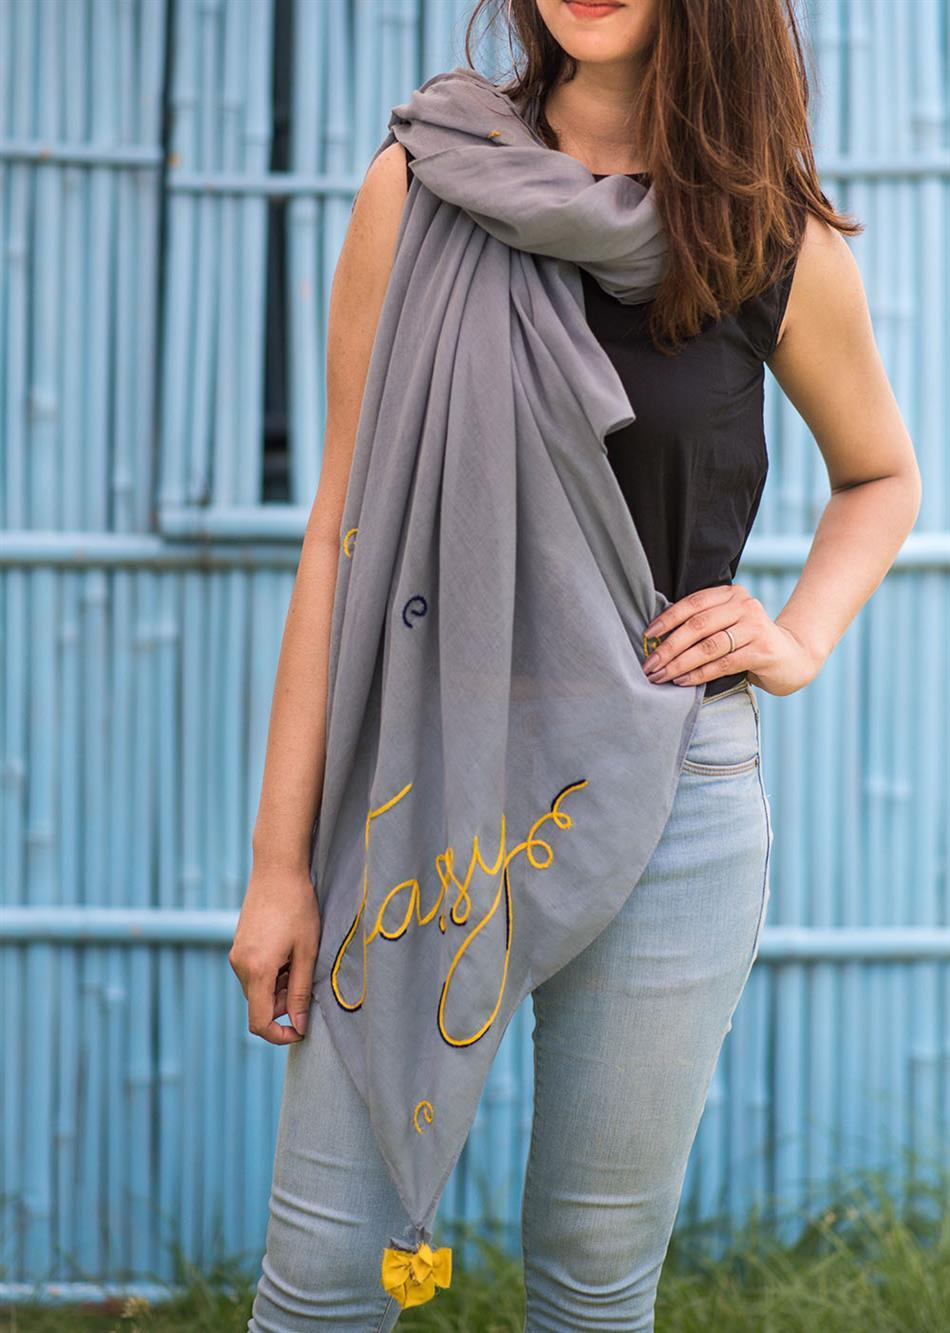 """Sassy"" hand embroidered scarf- Shale Grey  By Jovi Fashion"